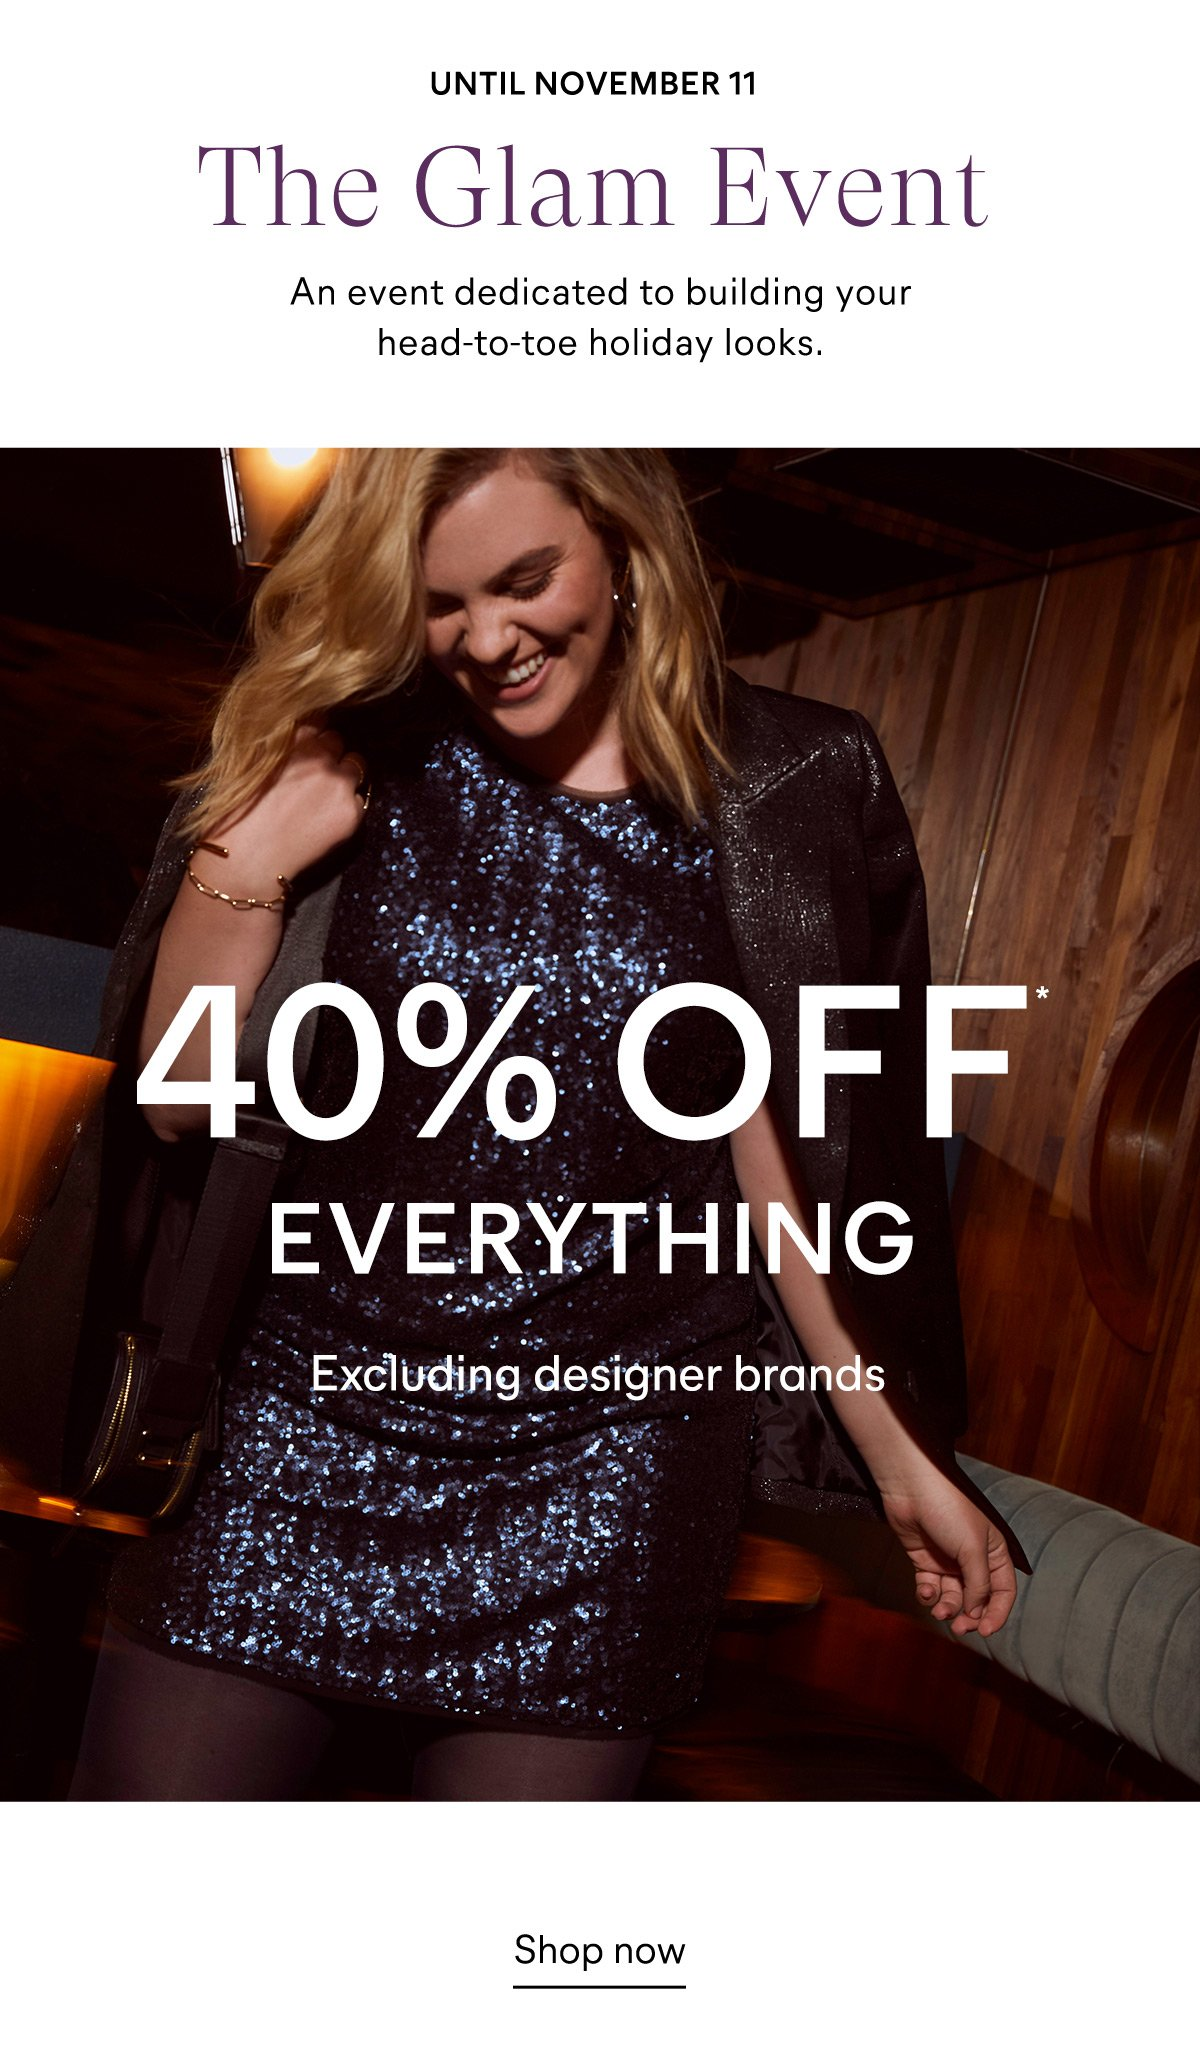 Until November 11  The Glam Event An event dedicated to building your head-to-toe holiday looks  40% off*  Everything (excluding designer brands)  Shop now